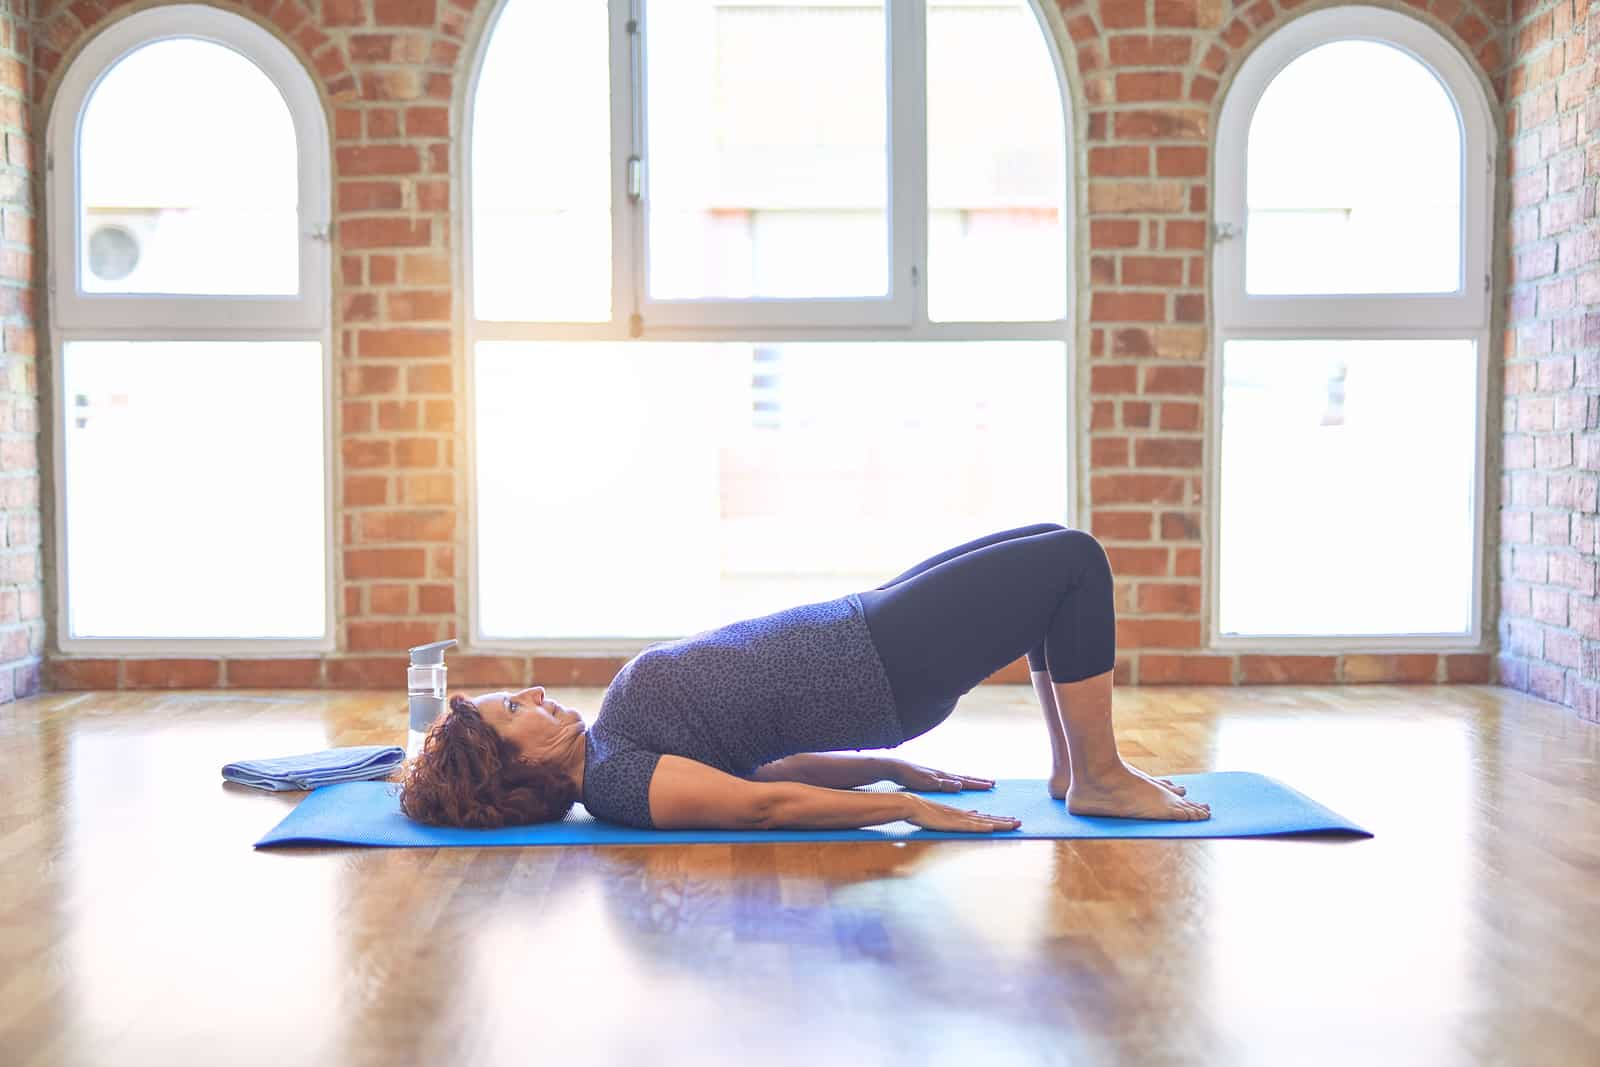 Woman doing bridge pose for insomnia relief- hormones